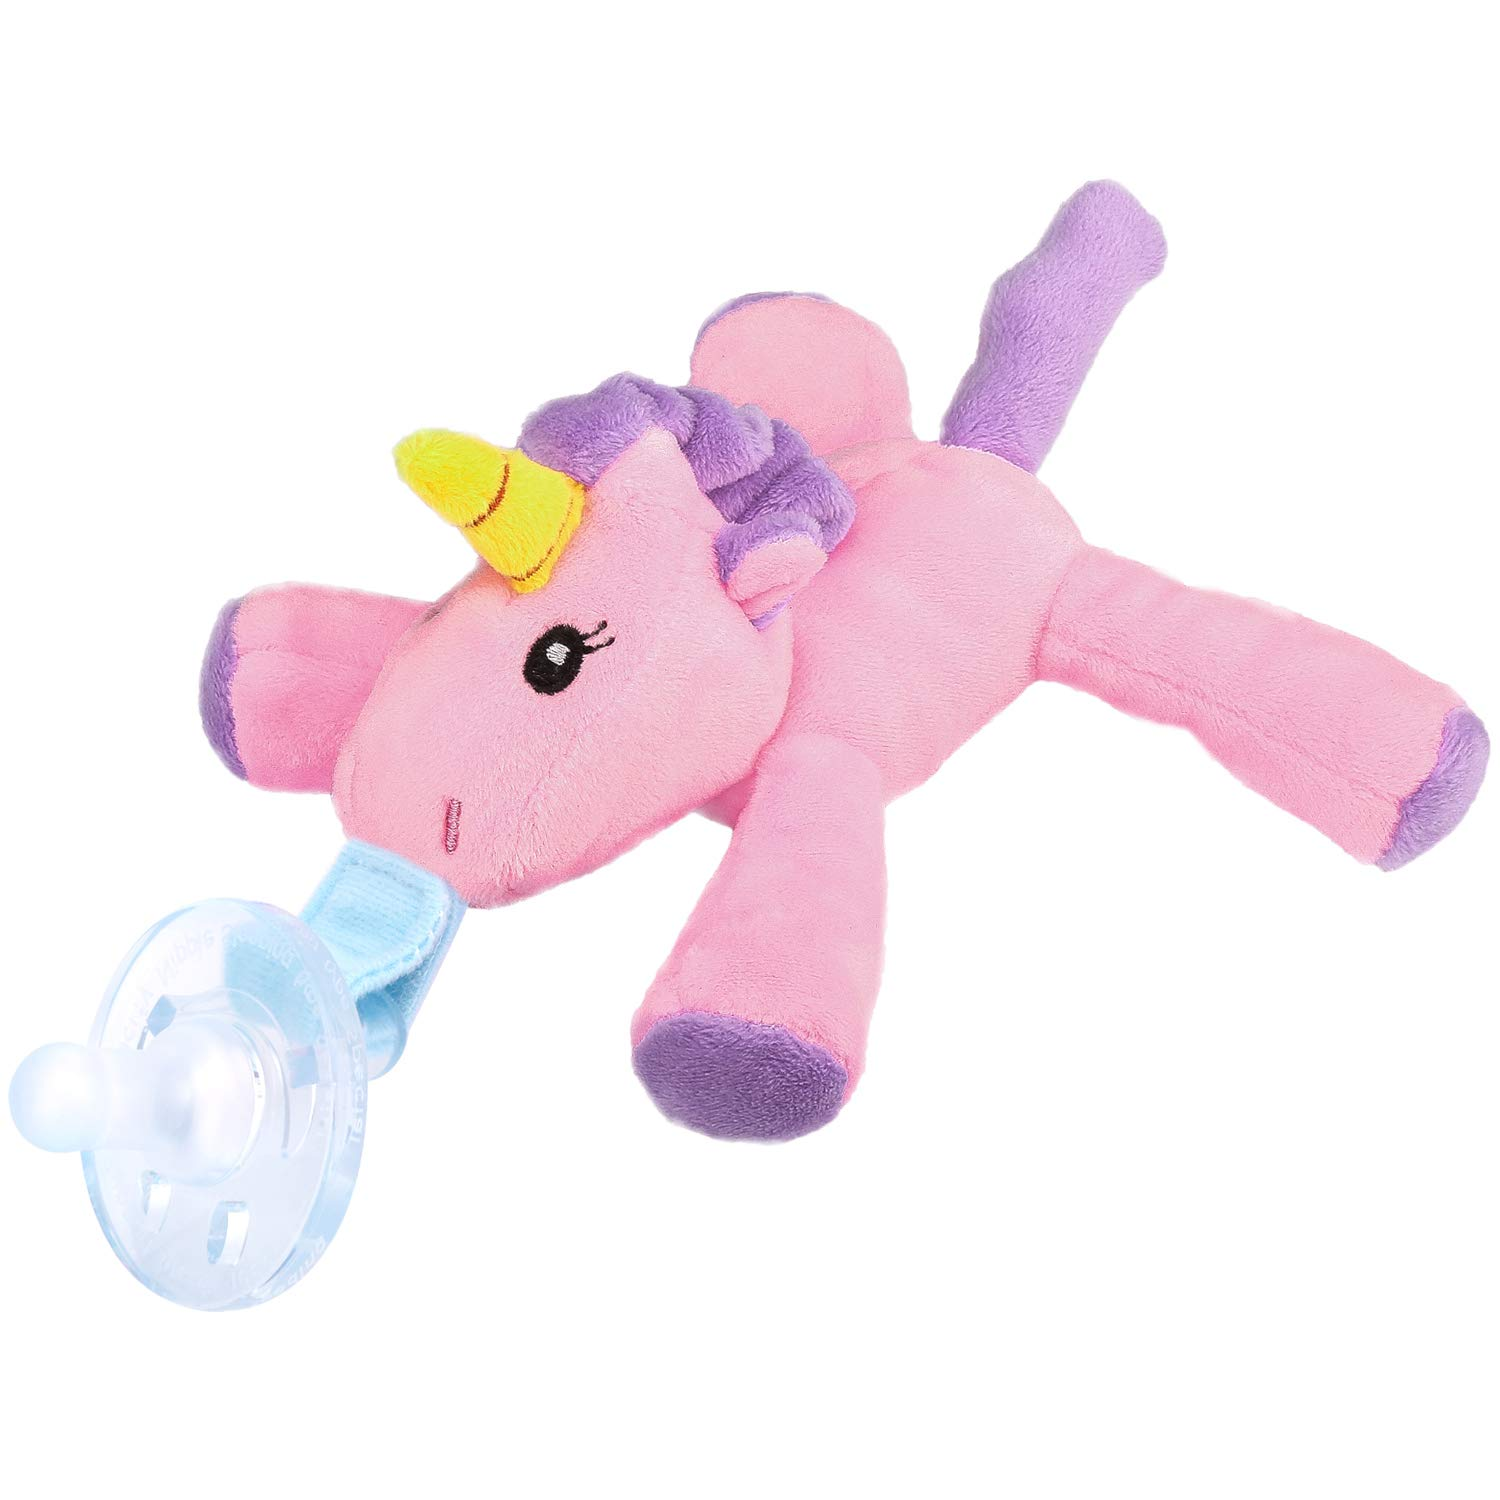 Puppy Makes Mischief Stuffed Animal, Zooawa Baby Pacifier Unicorn Pacifier Holder With Detachable Plush Stuffed Animal Toy For Infant Boys Girls 3 36 Months